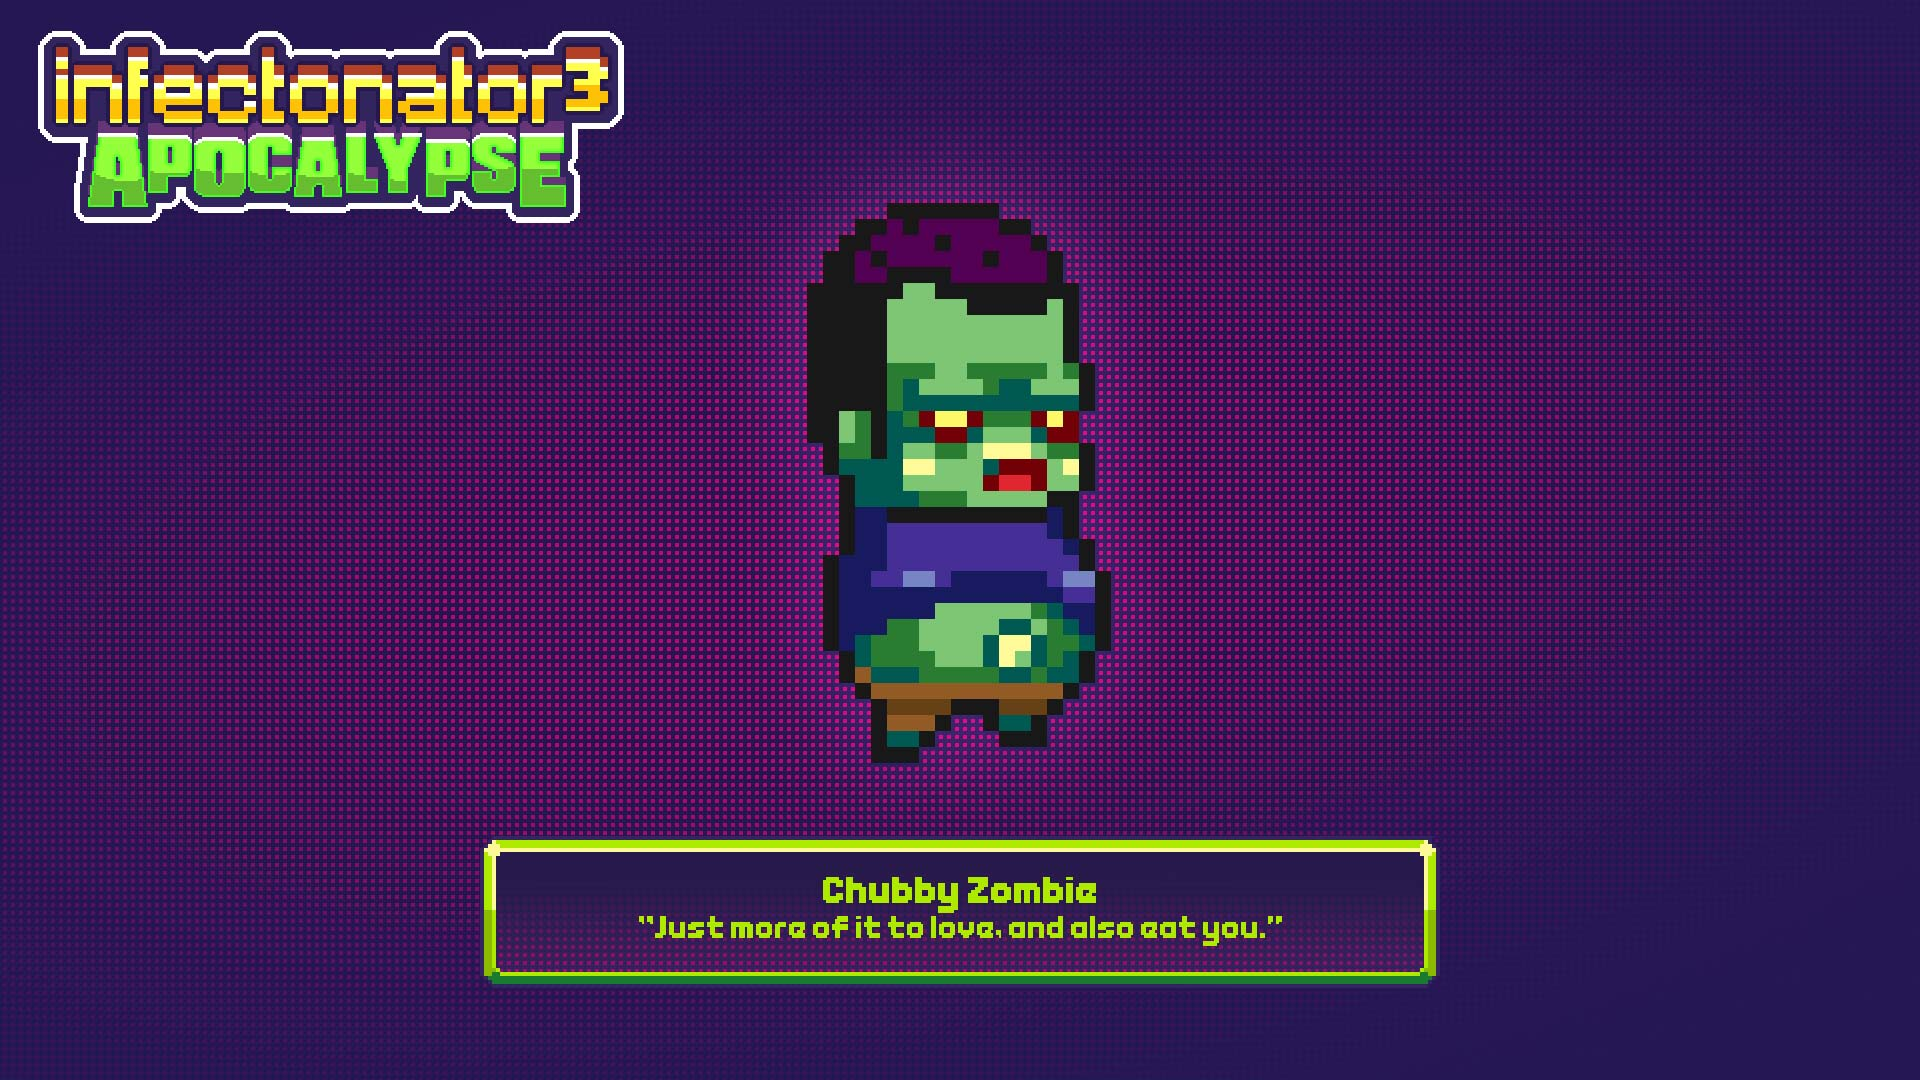 Card 2 of 6Artwork · Chubby Zombie